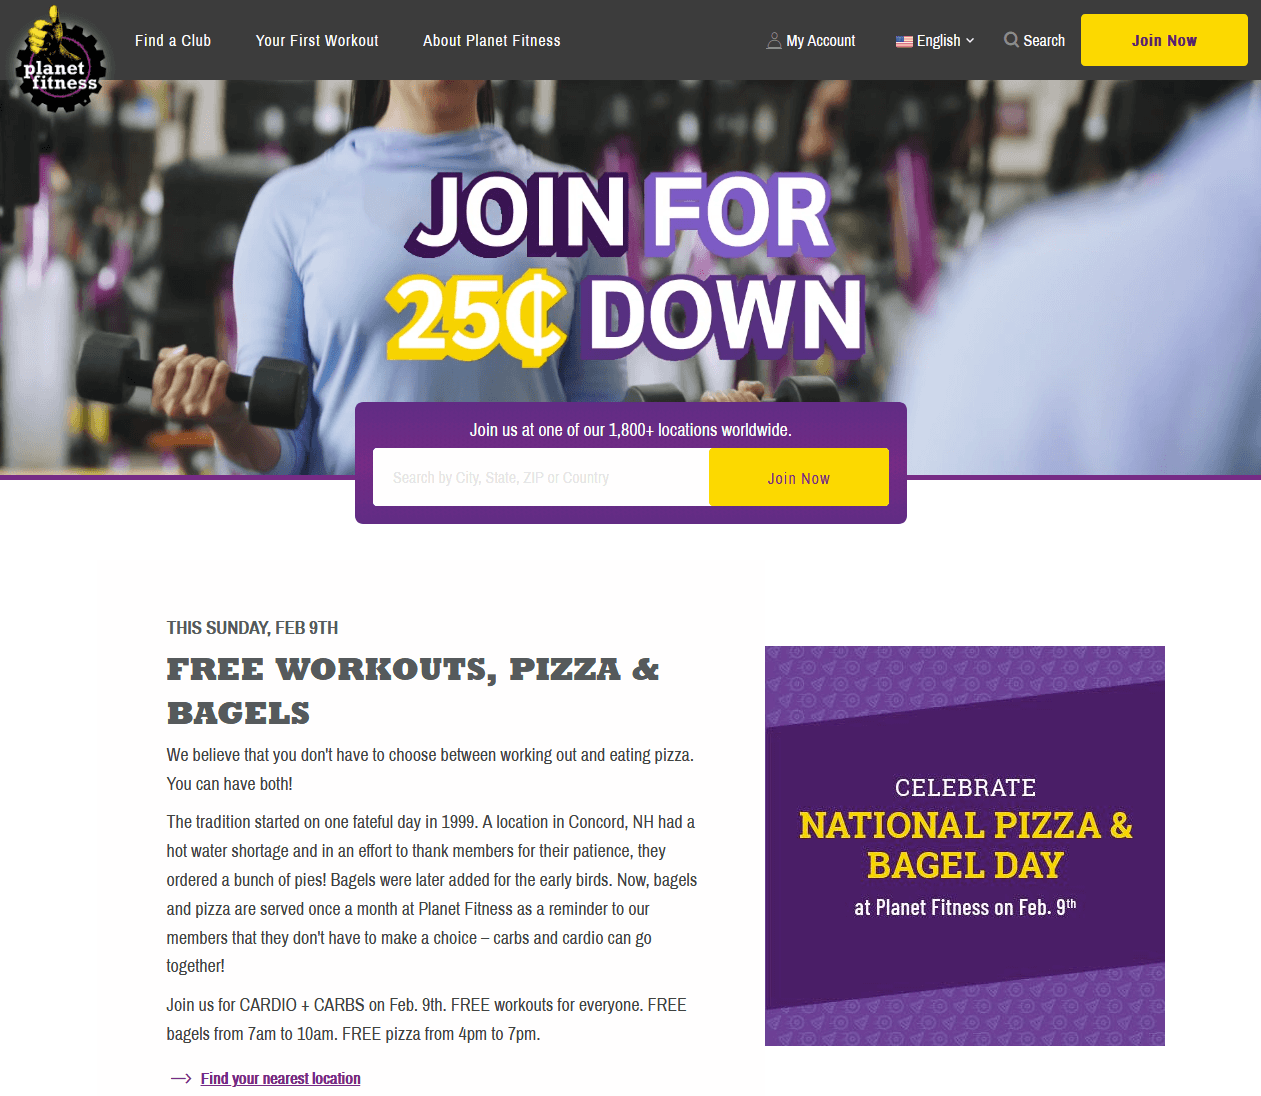 Planet Fitness Promo Code